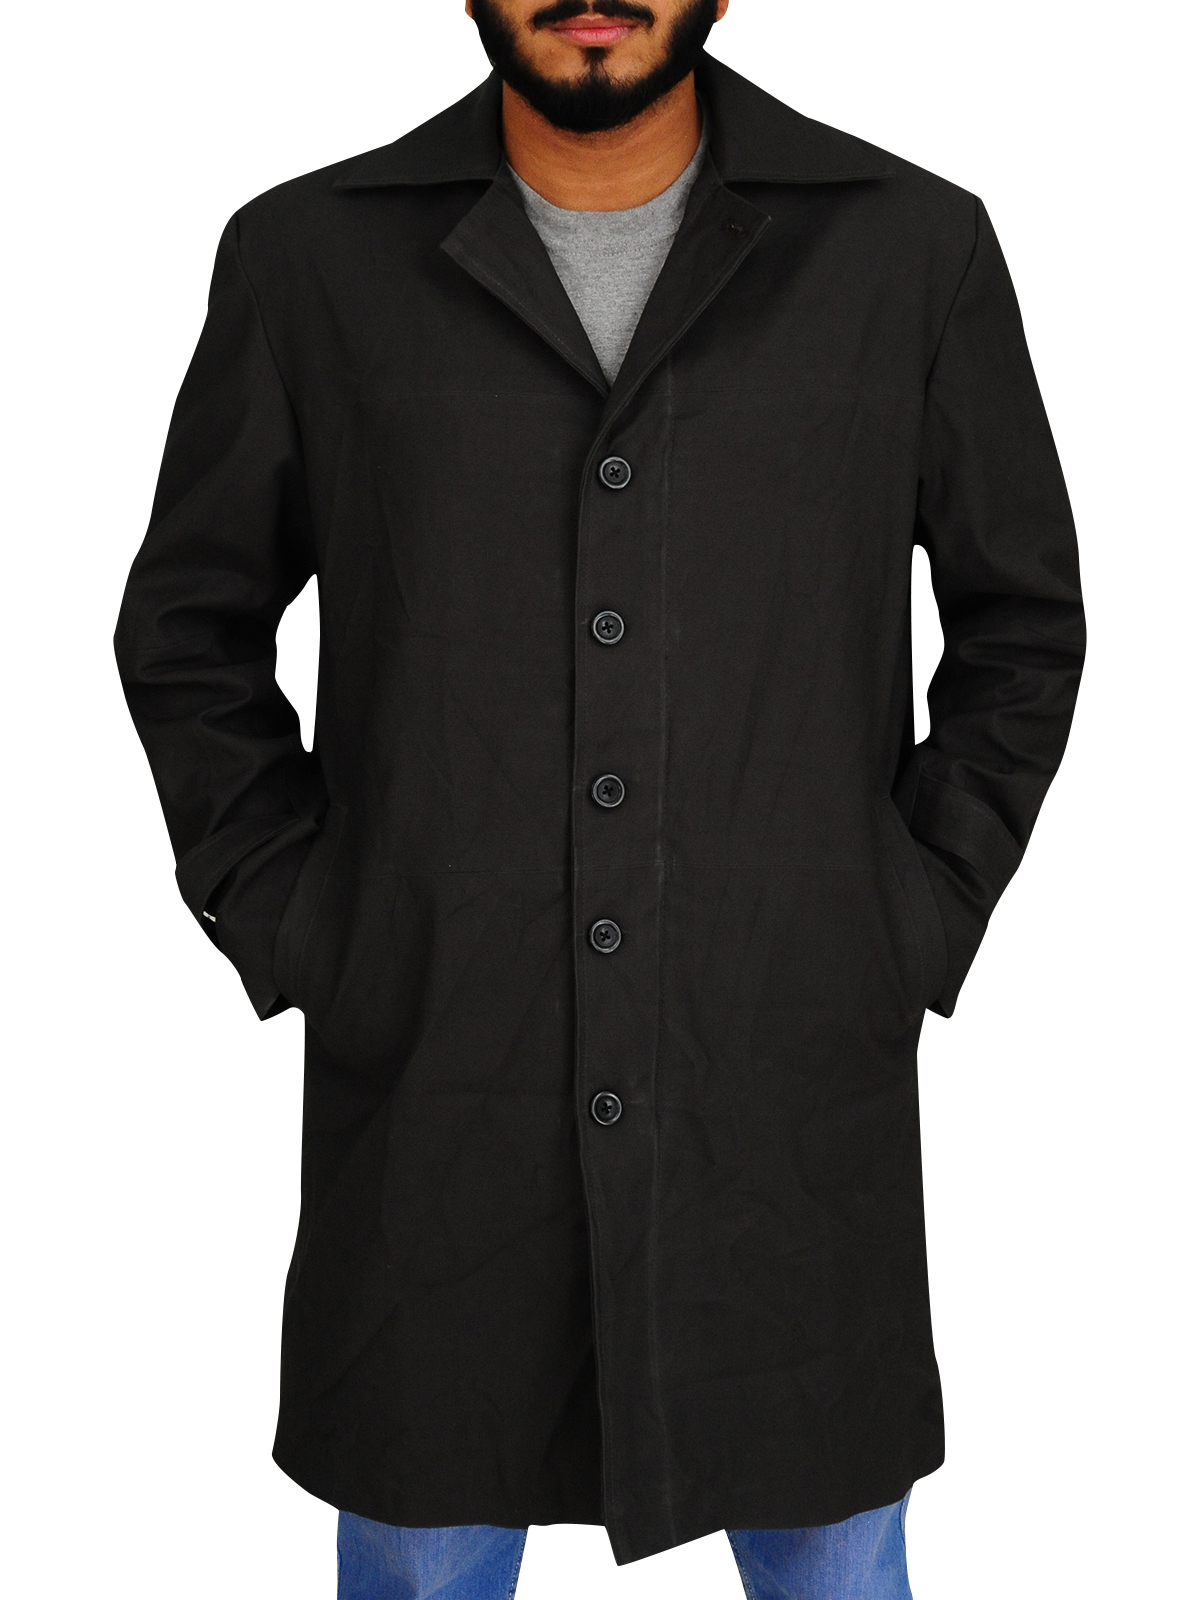 Jason-Statham-Cotton-Coat